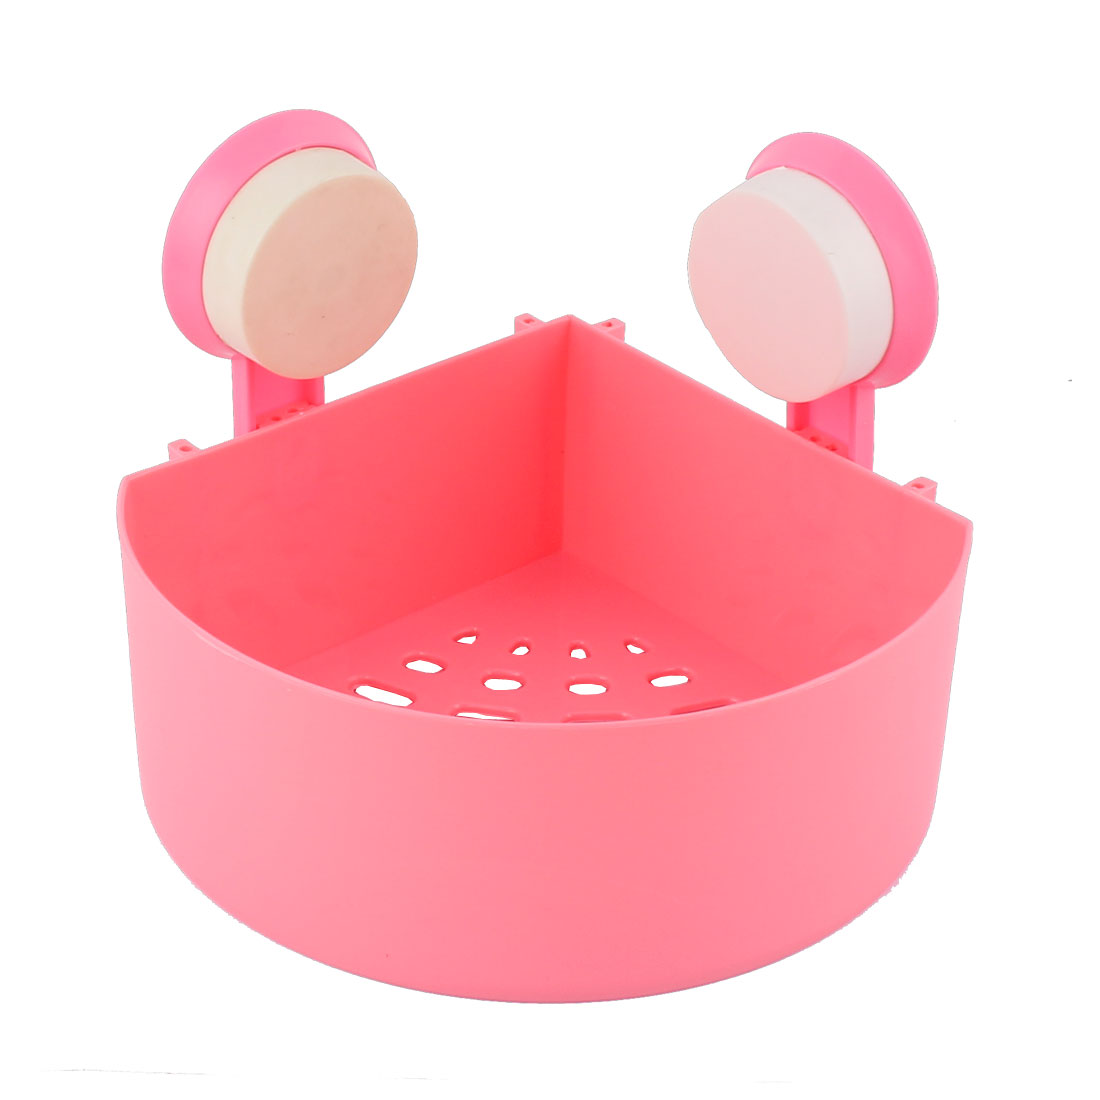 Bathroom Wall Corner Suction Cup Triangle Storage Shelf Rack Holder Pink